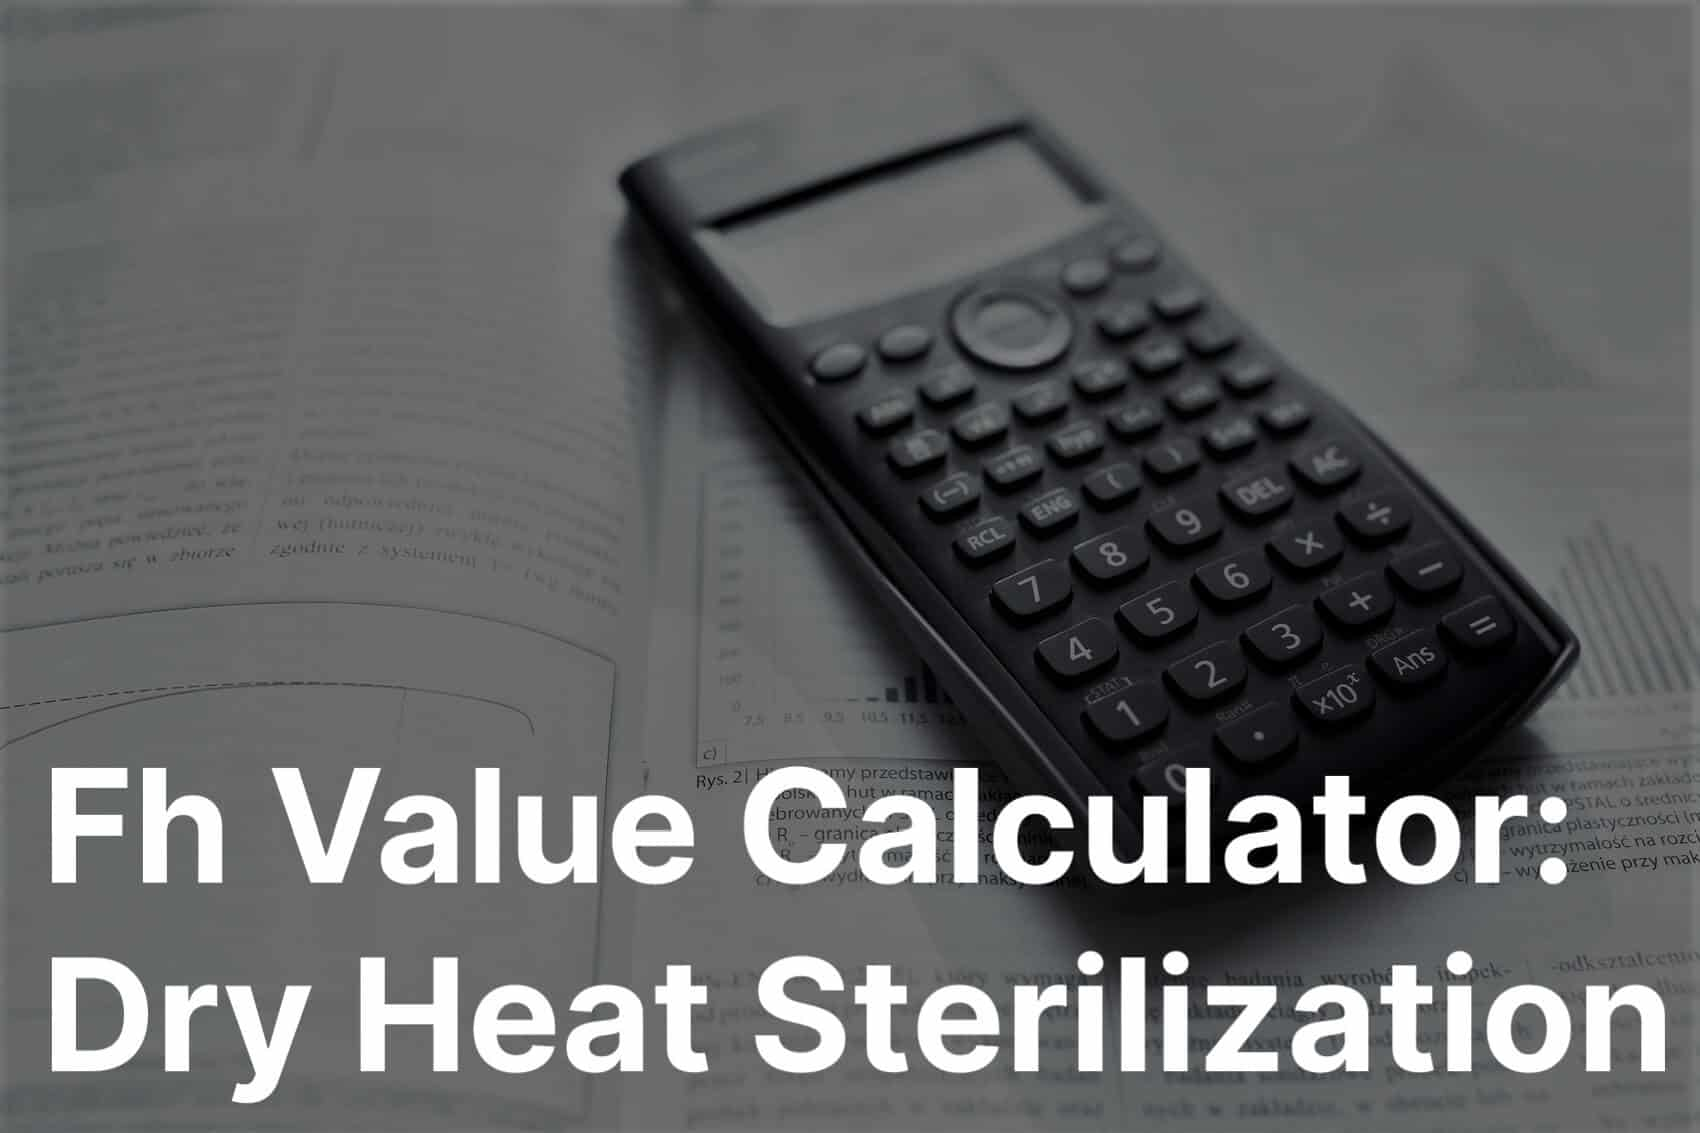 fh-value-calculator-useful-in-dry-heat-sterilization